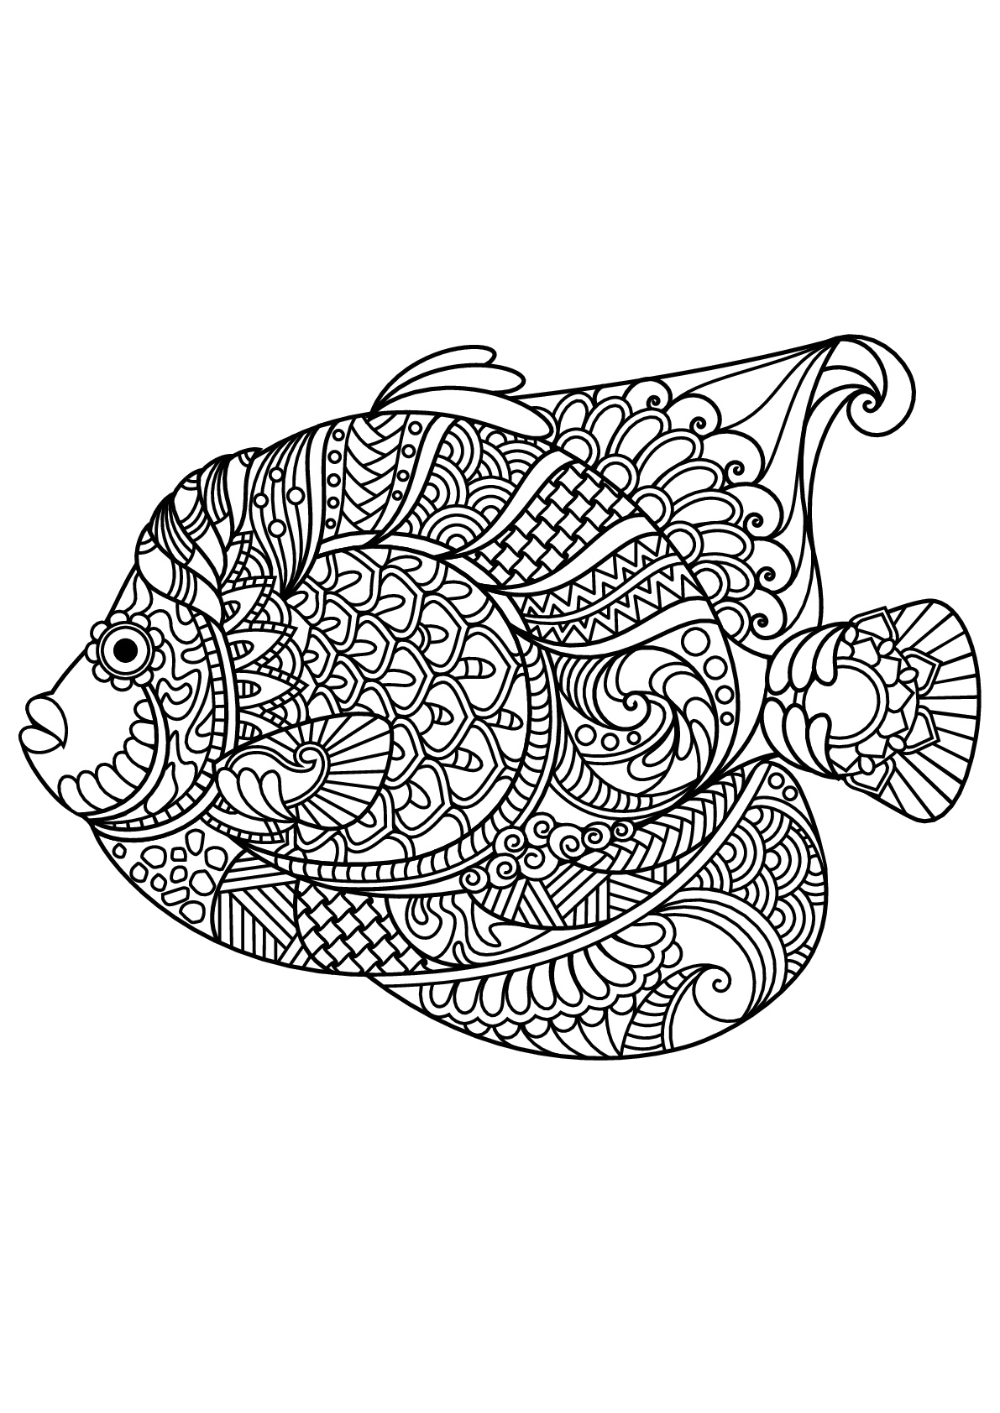 Fish With Complex And Beautiful Patterns Fish Coloring Page Animal Coloring Books Coloring Pages